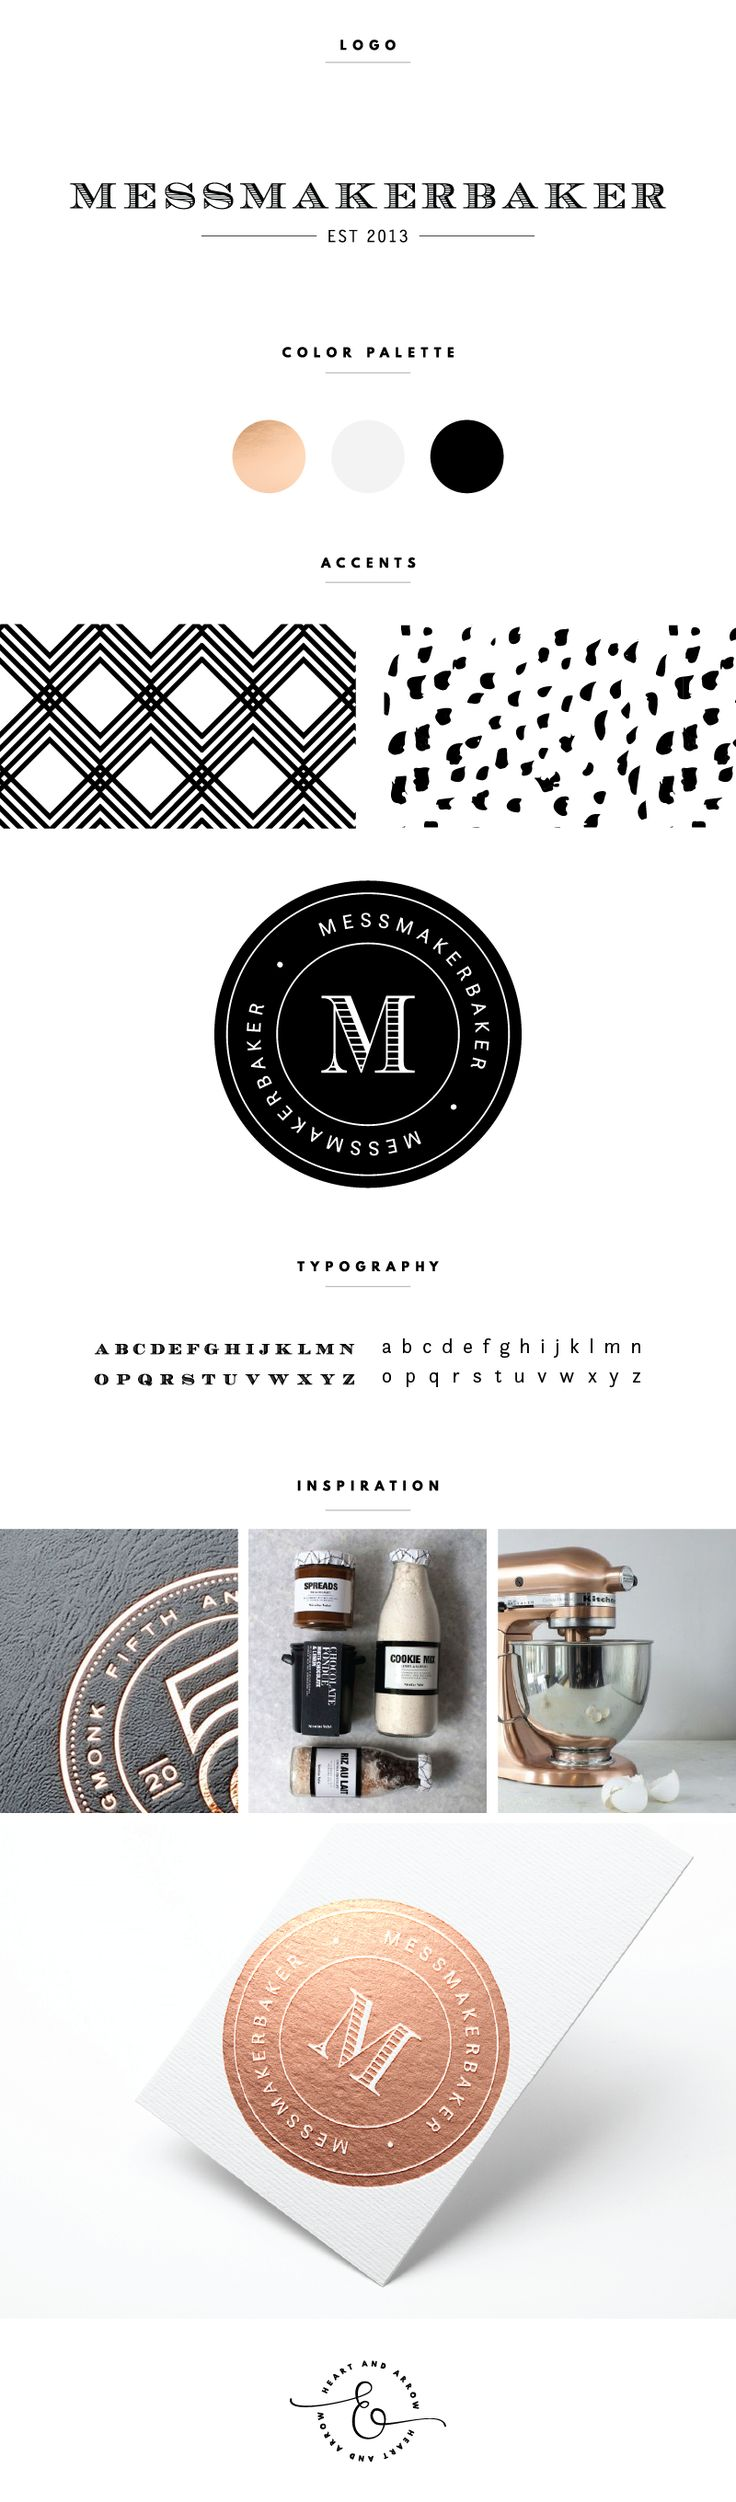 *I love the lower half of this brand board*-Emma---   Rose gold, black, and white brand board and logo design     by Heart & Arrow